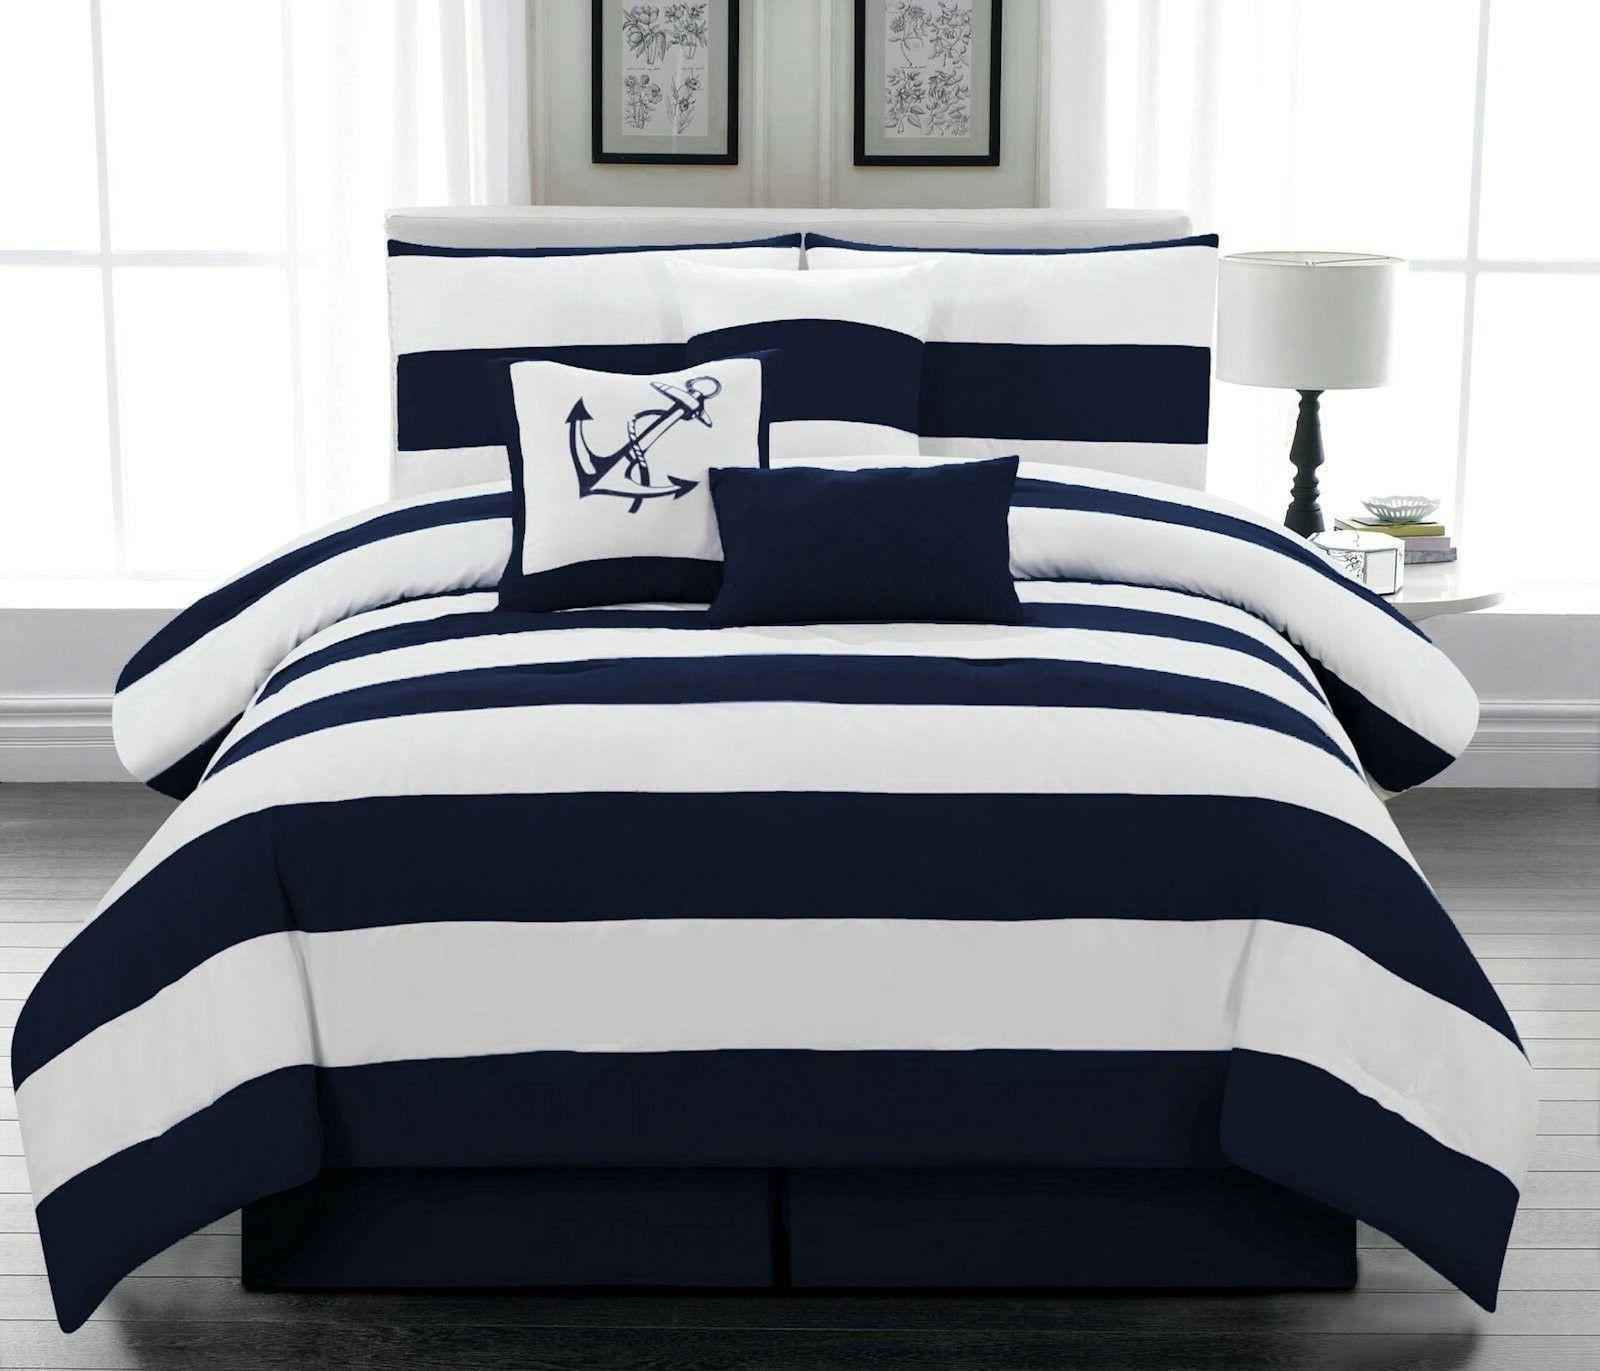 7 pcs Microfiber Nautical Comforter set Navy Blue Striped Fu